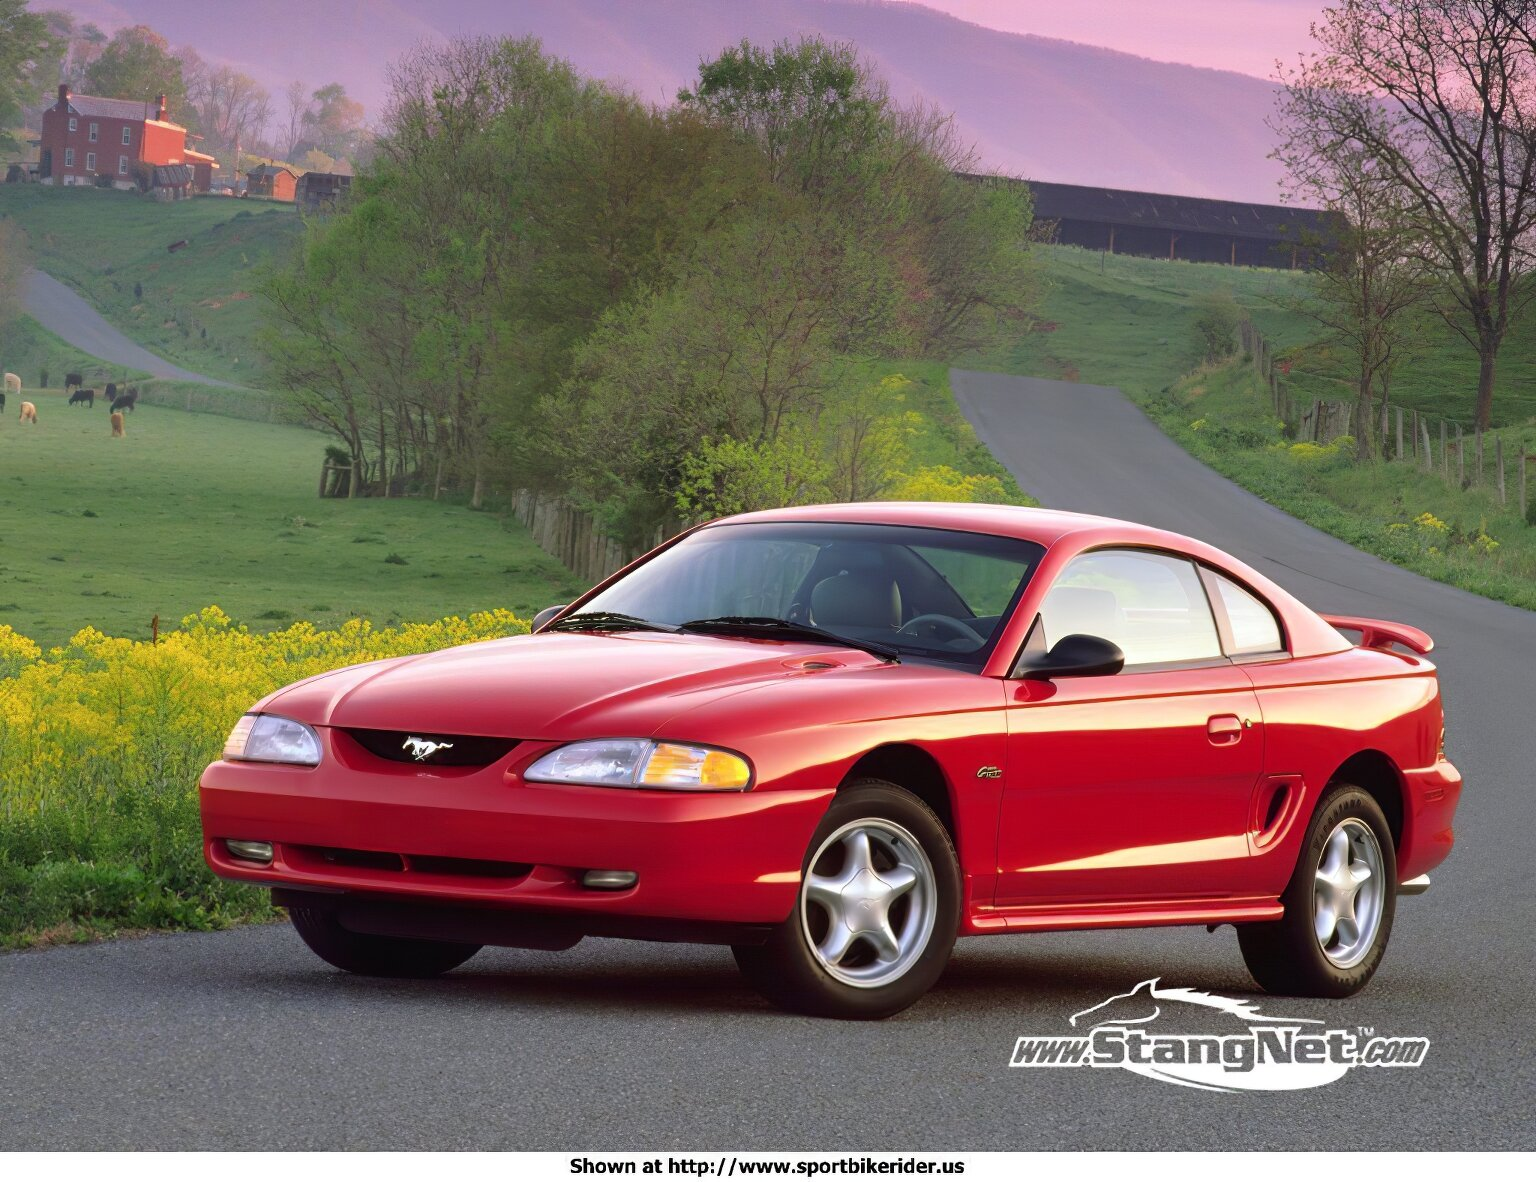 Ford Mustang - ID: 1619